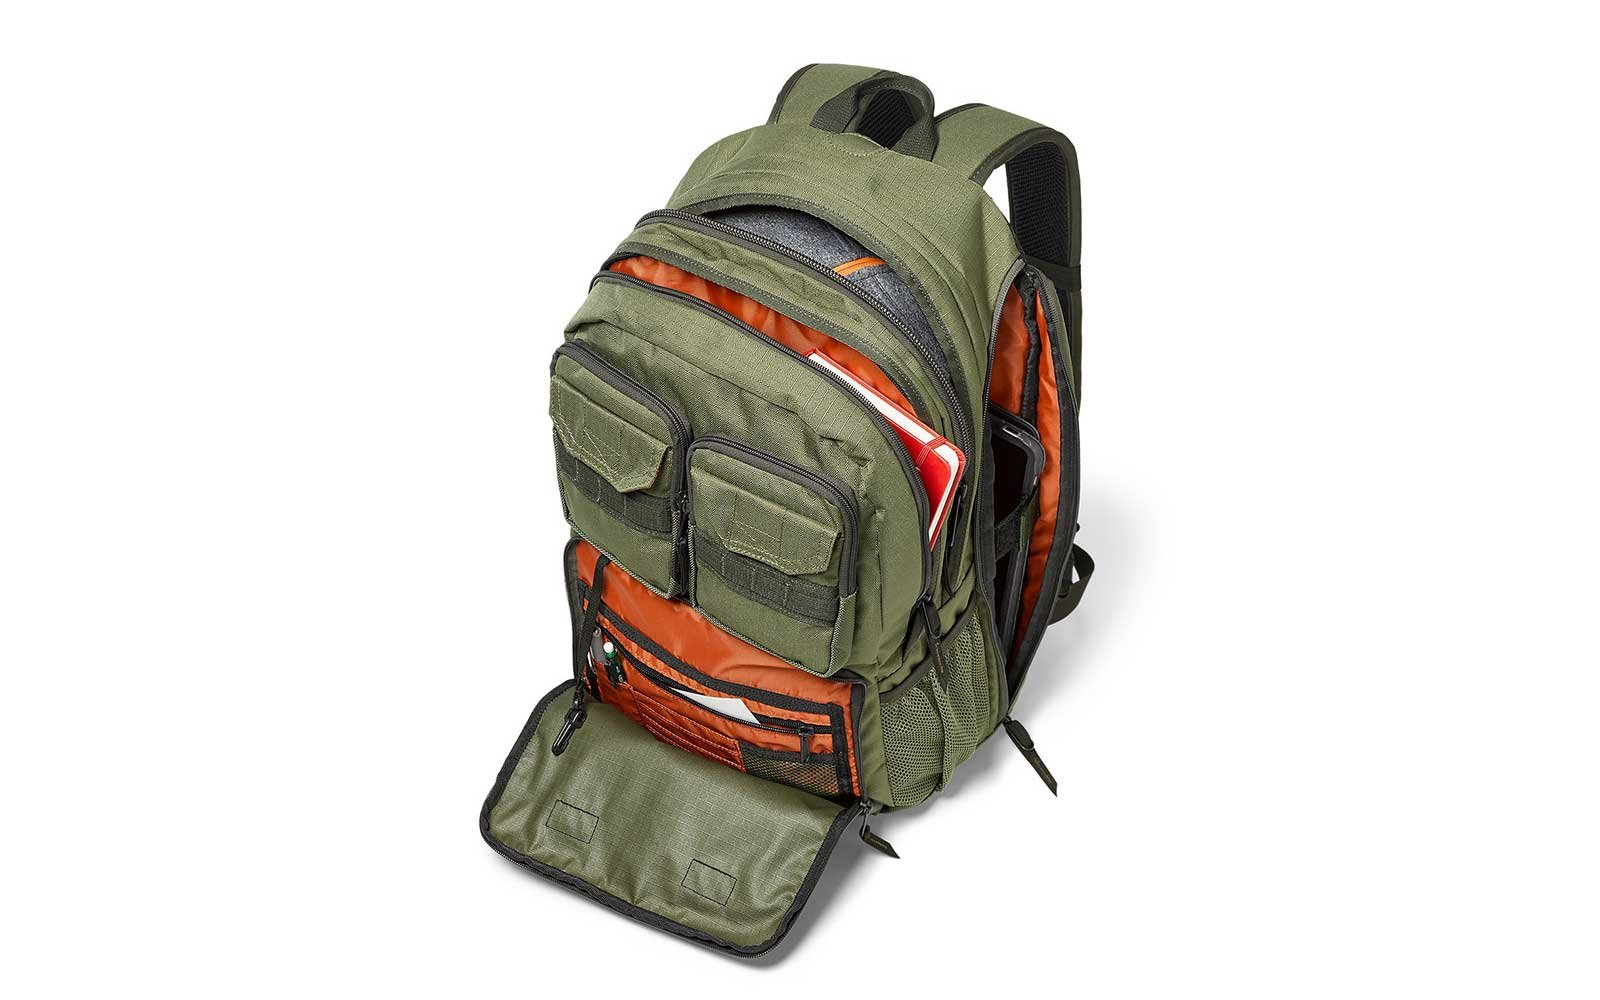 db6c7ba1a6 Eddie Bauer Cargo Pack. Green Eddie Bauer waterproof backpack